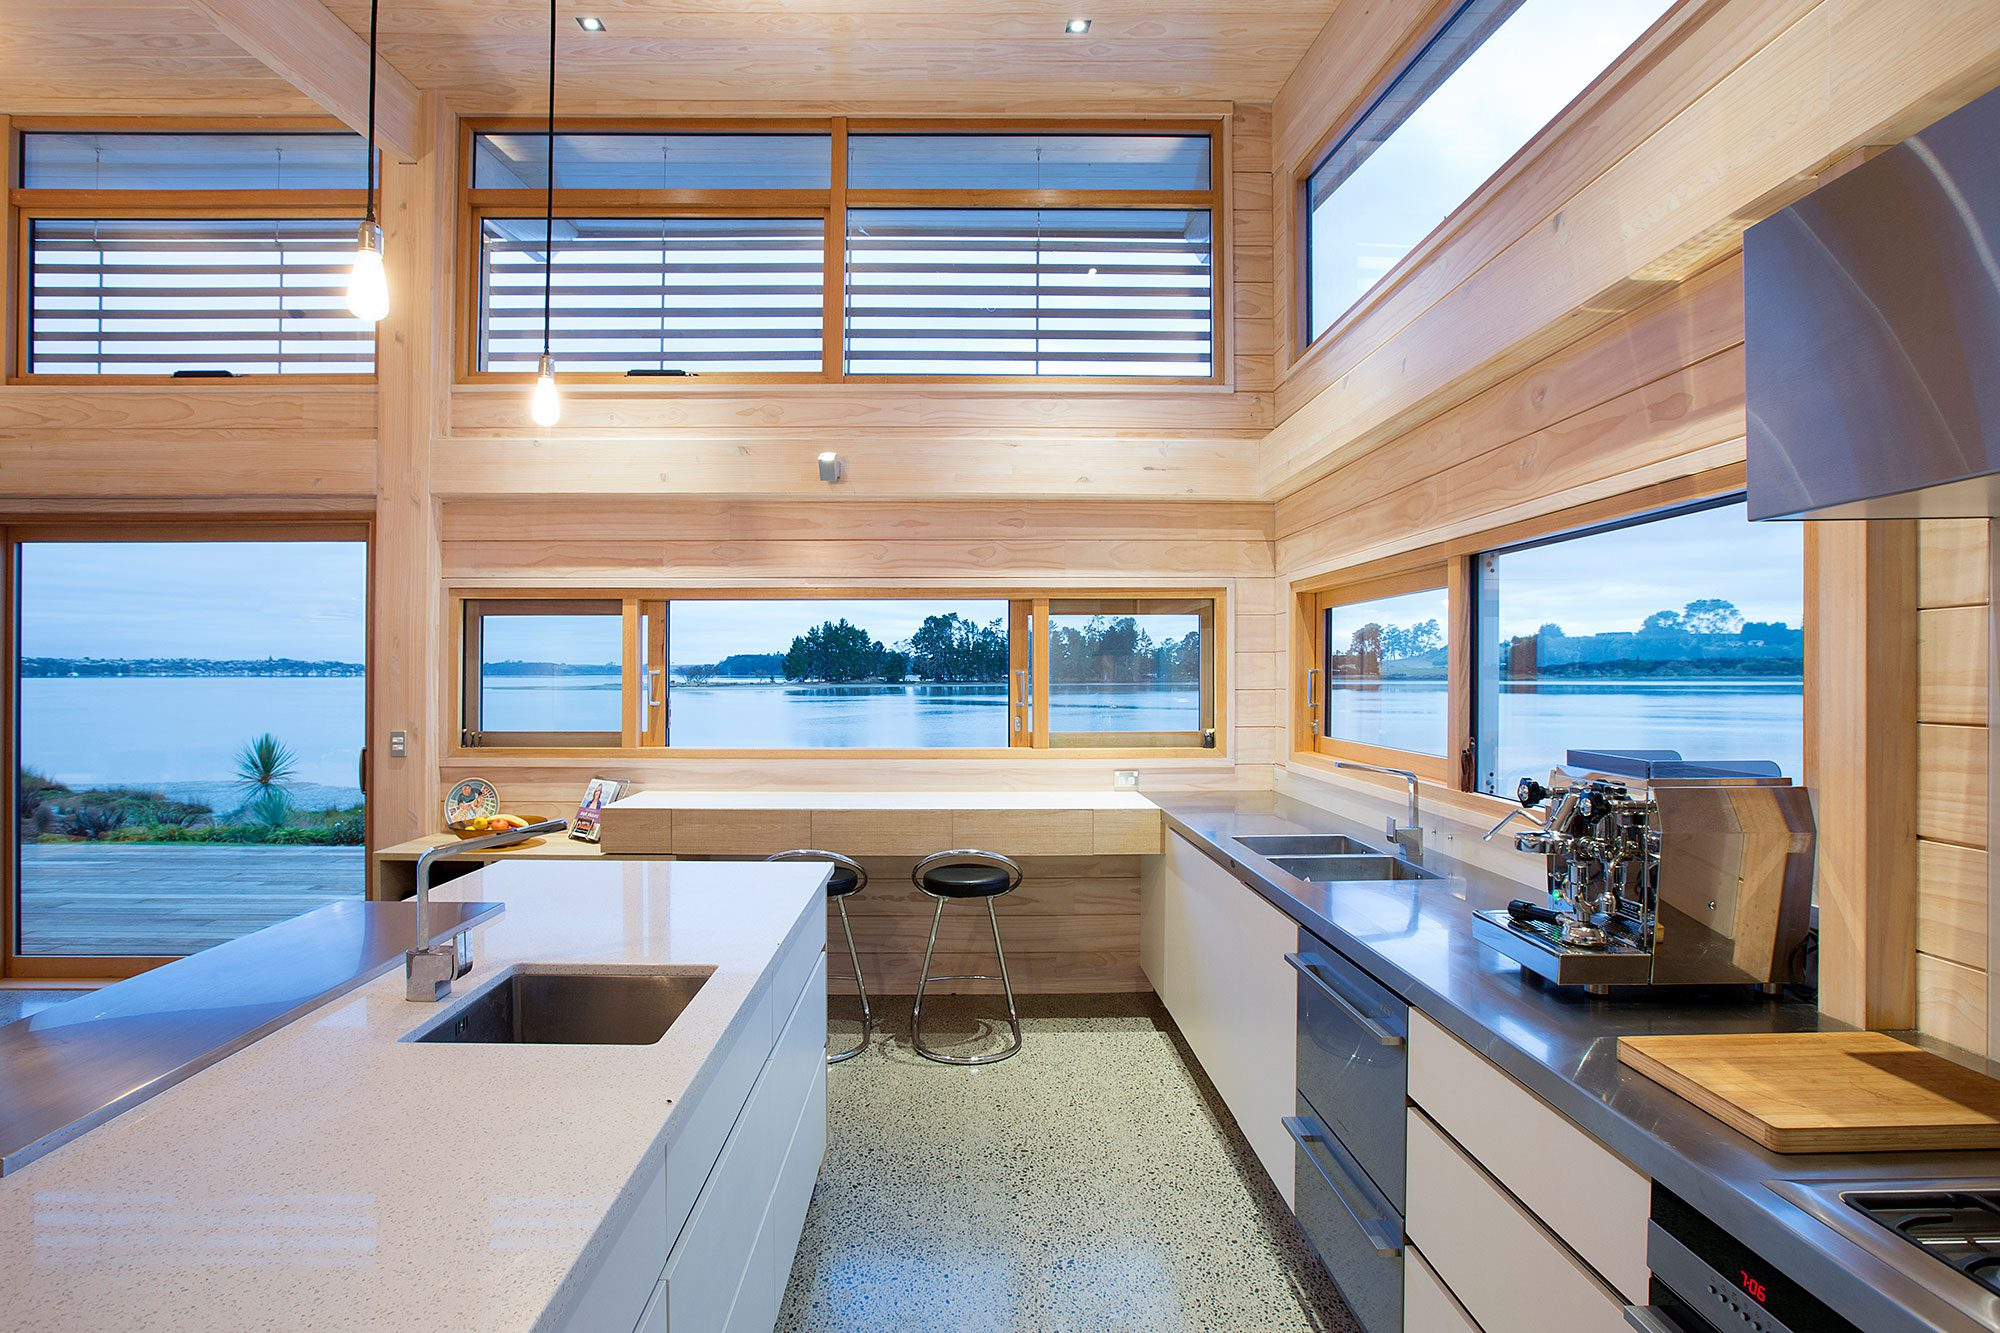 Scapens River Estuary Home with Landscape Windows